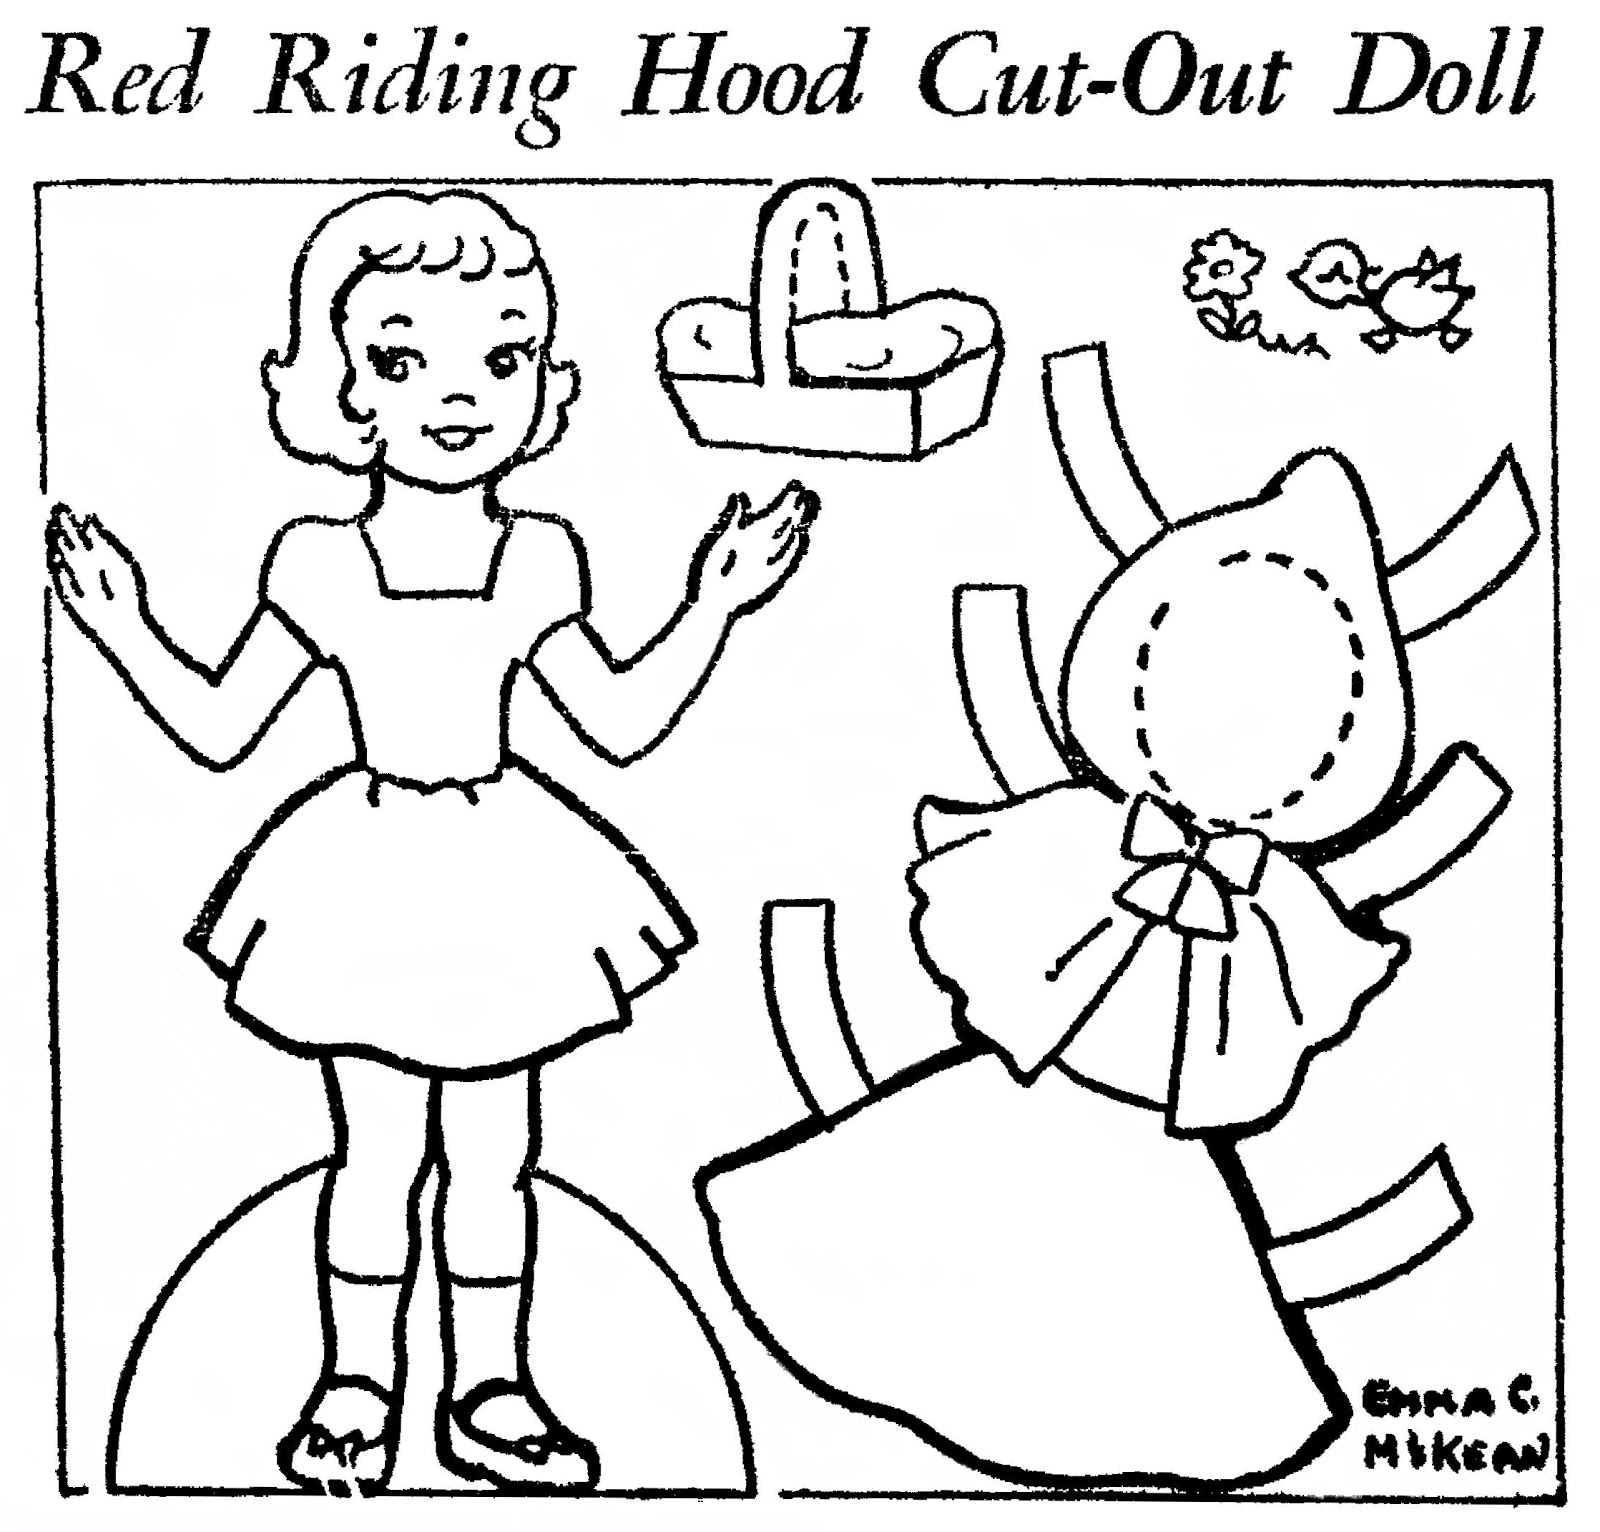 Mostly paper dolls too red riding hood cut out doll for Paper doll templates cut out